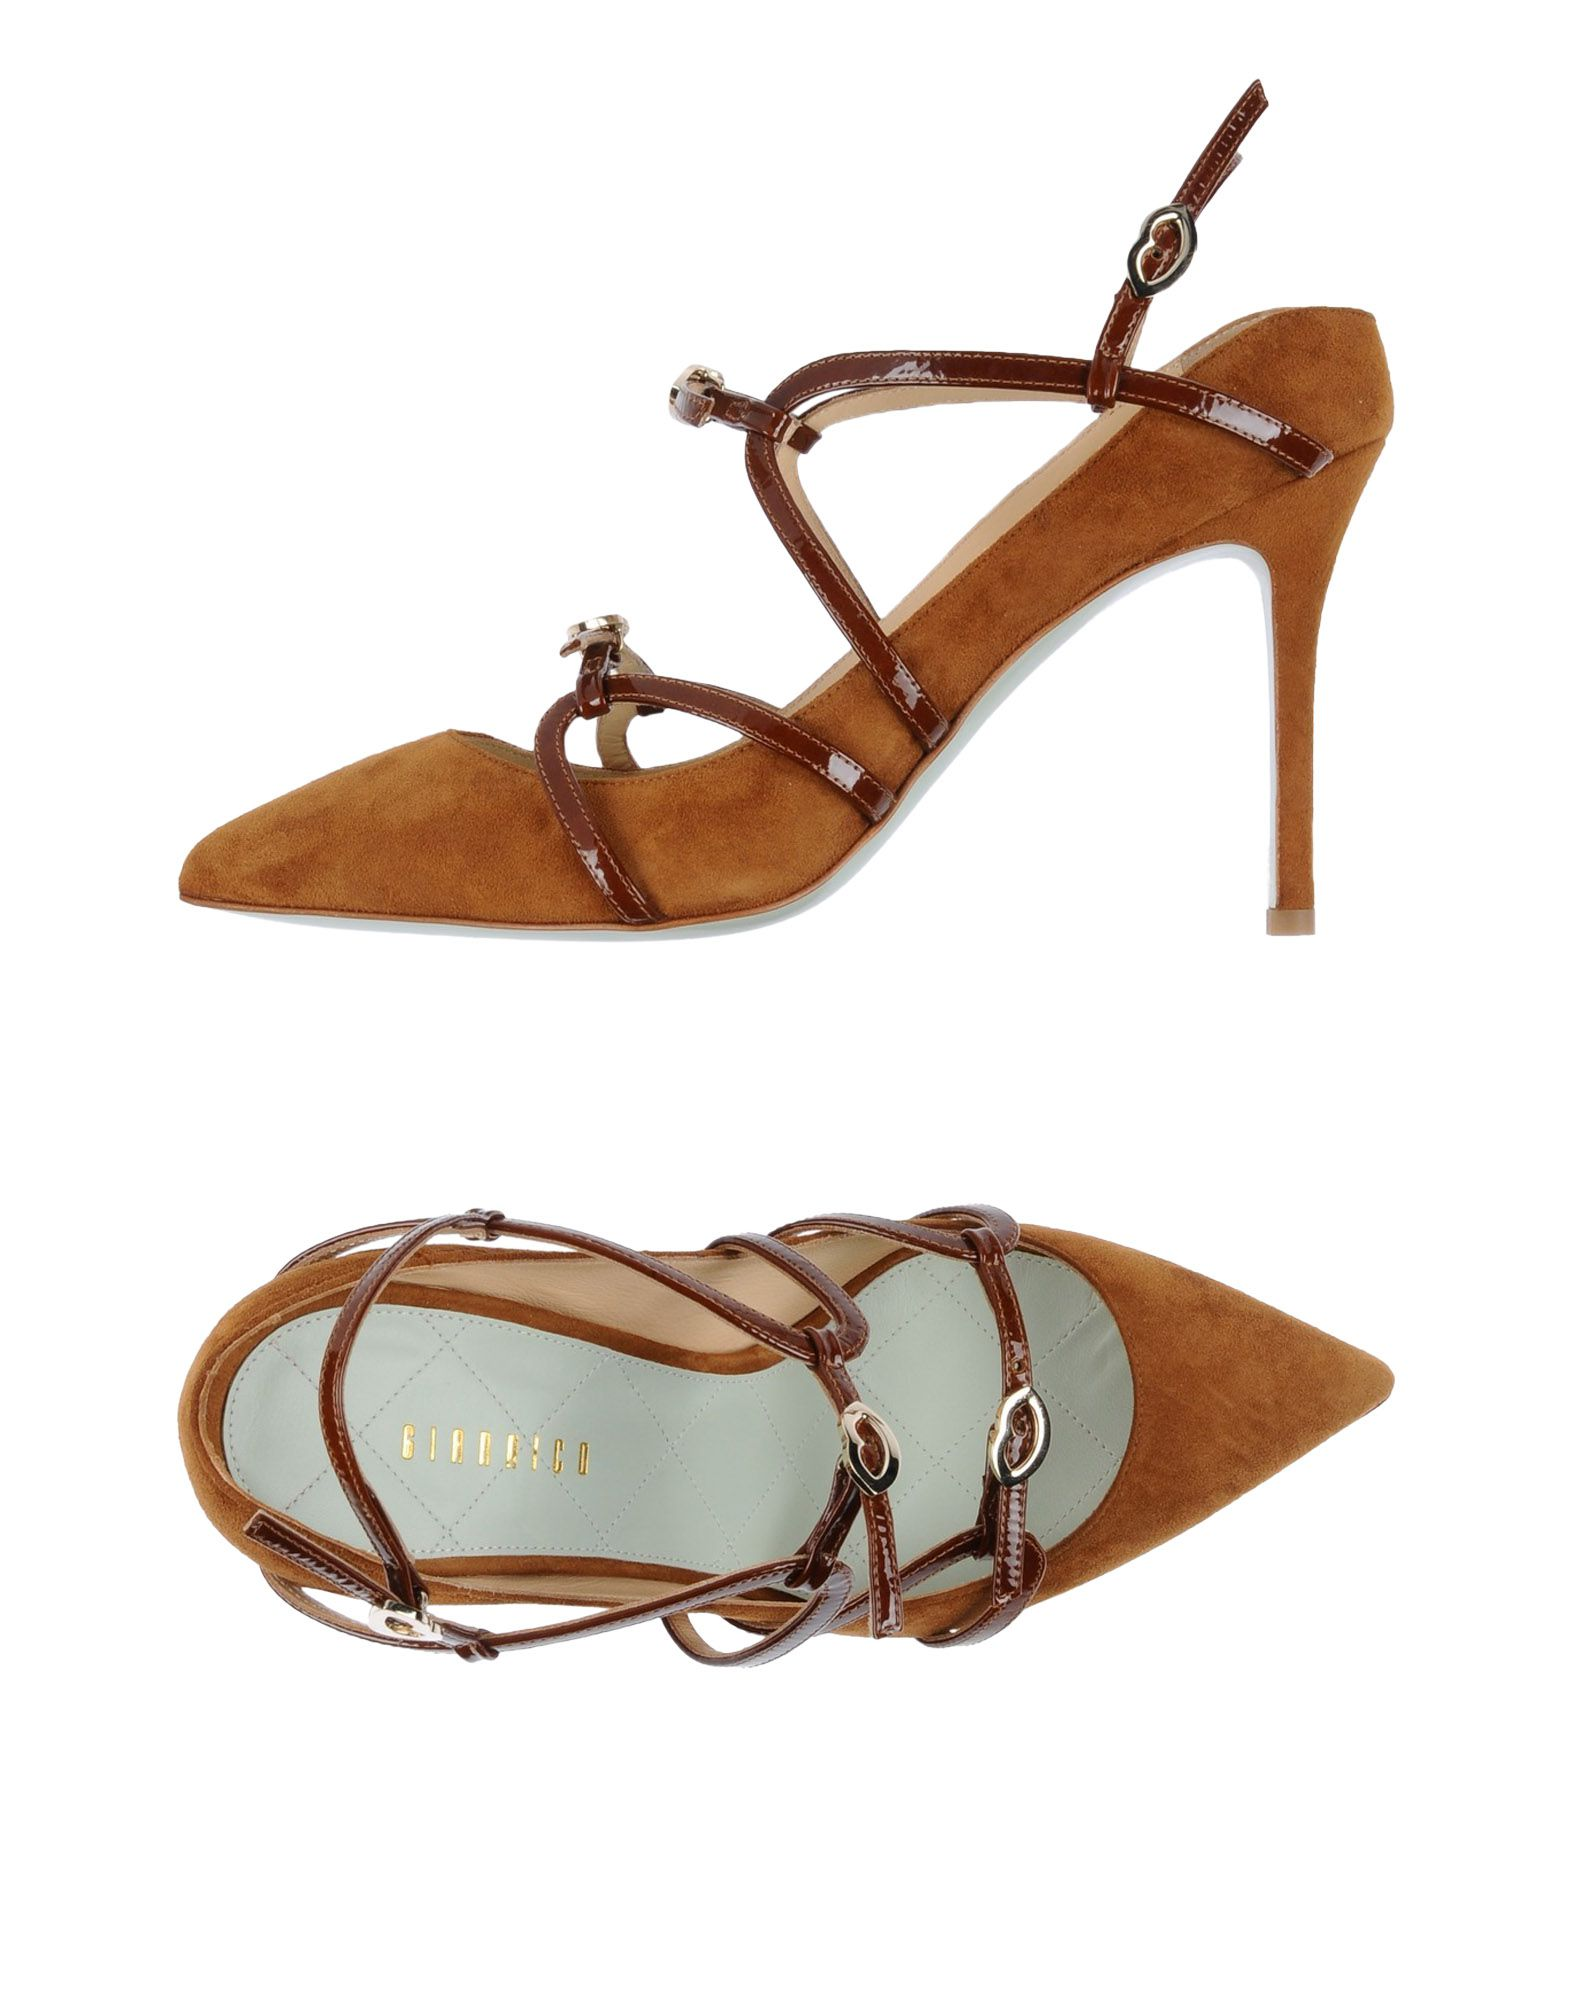 GIANNICO Pump in Camel